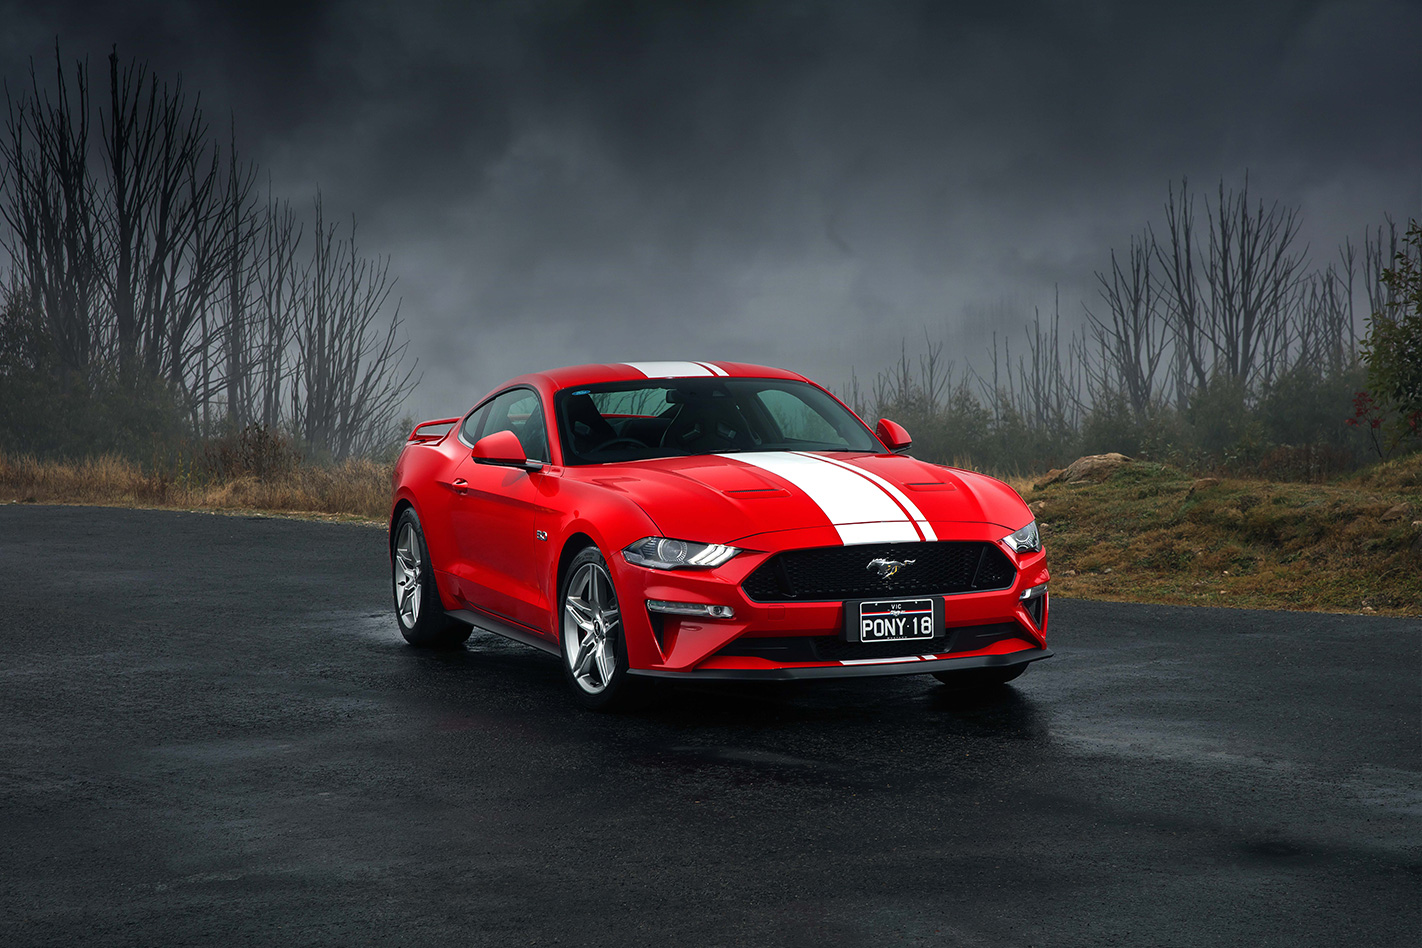 2018 Ford Mustang Review 1986 Gt 5 0 Convertible For Those Slightly Elevated Stickers You Get A Truckload Of Sparkly New Features Starting With The Proper Full Led Headlight Arrangement Us Car